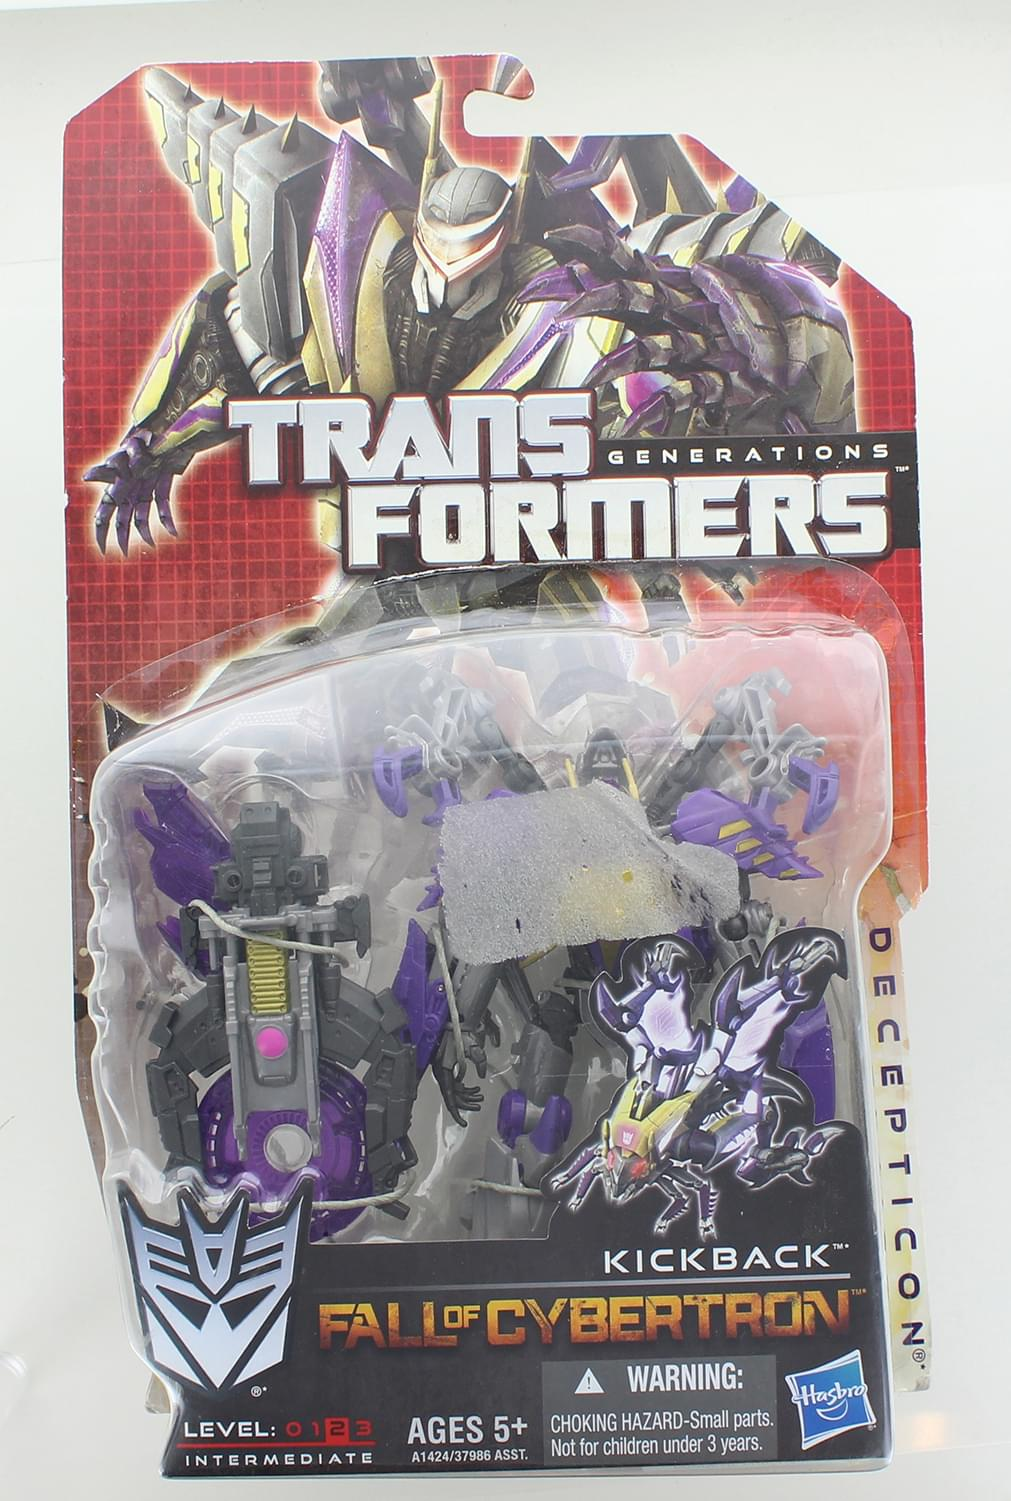 Transfomers Generations Fall of Cybertron | Kickback | Damaged Package